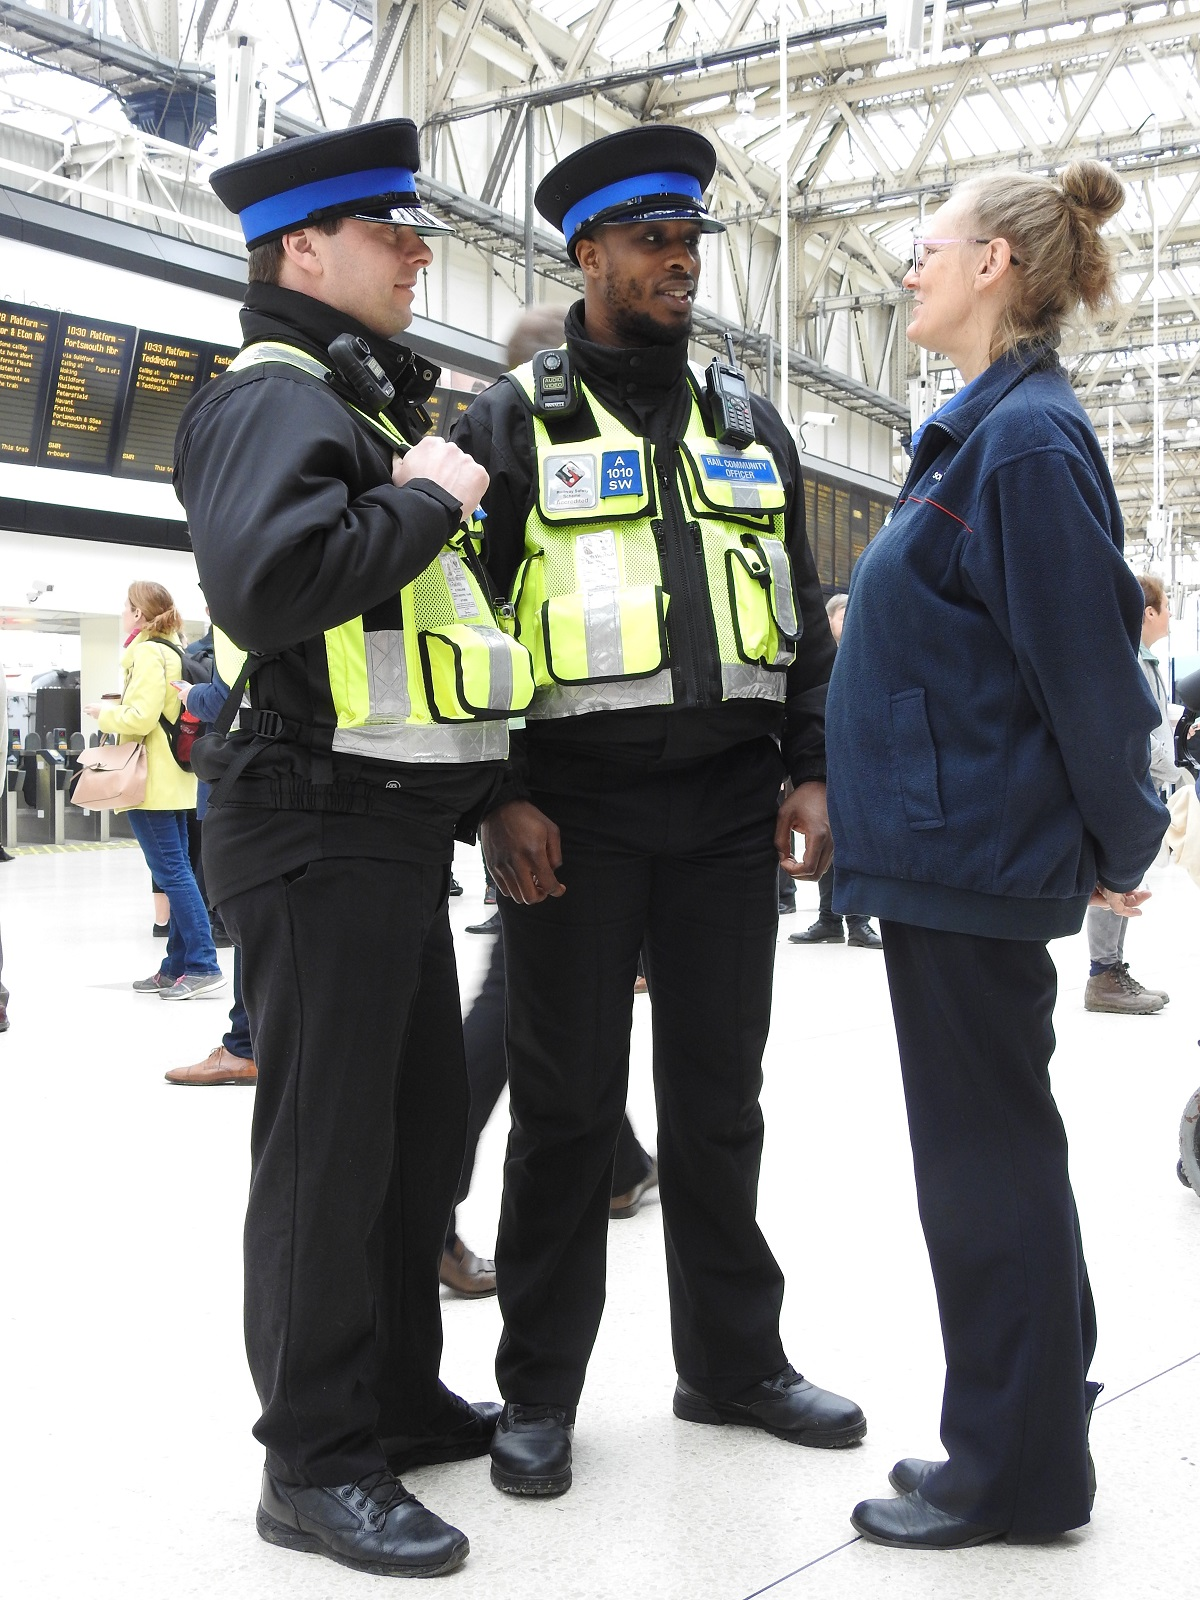 Station Watch Scheme launched by South Western Railway